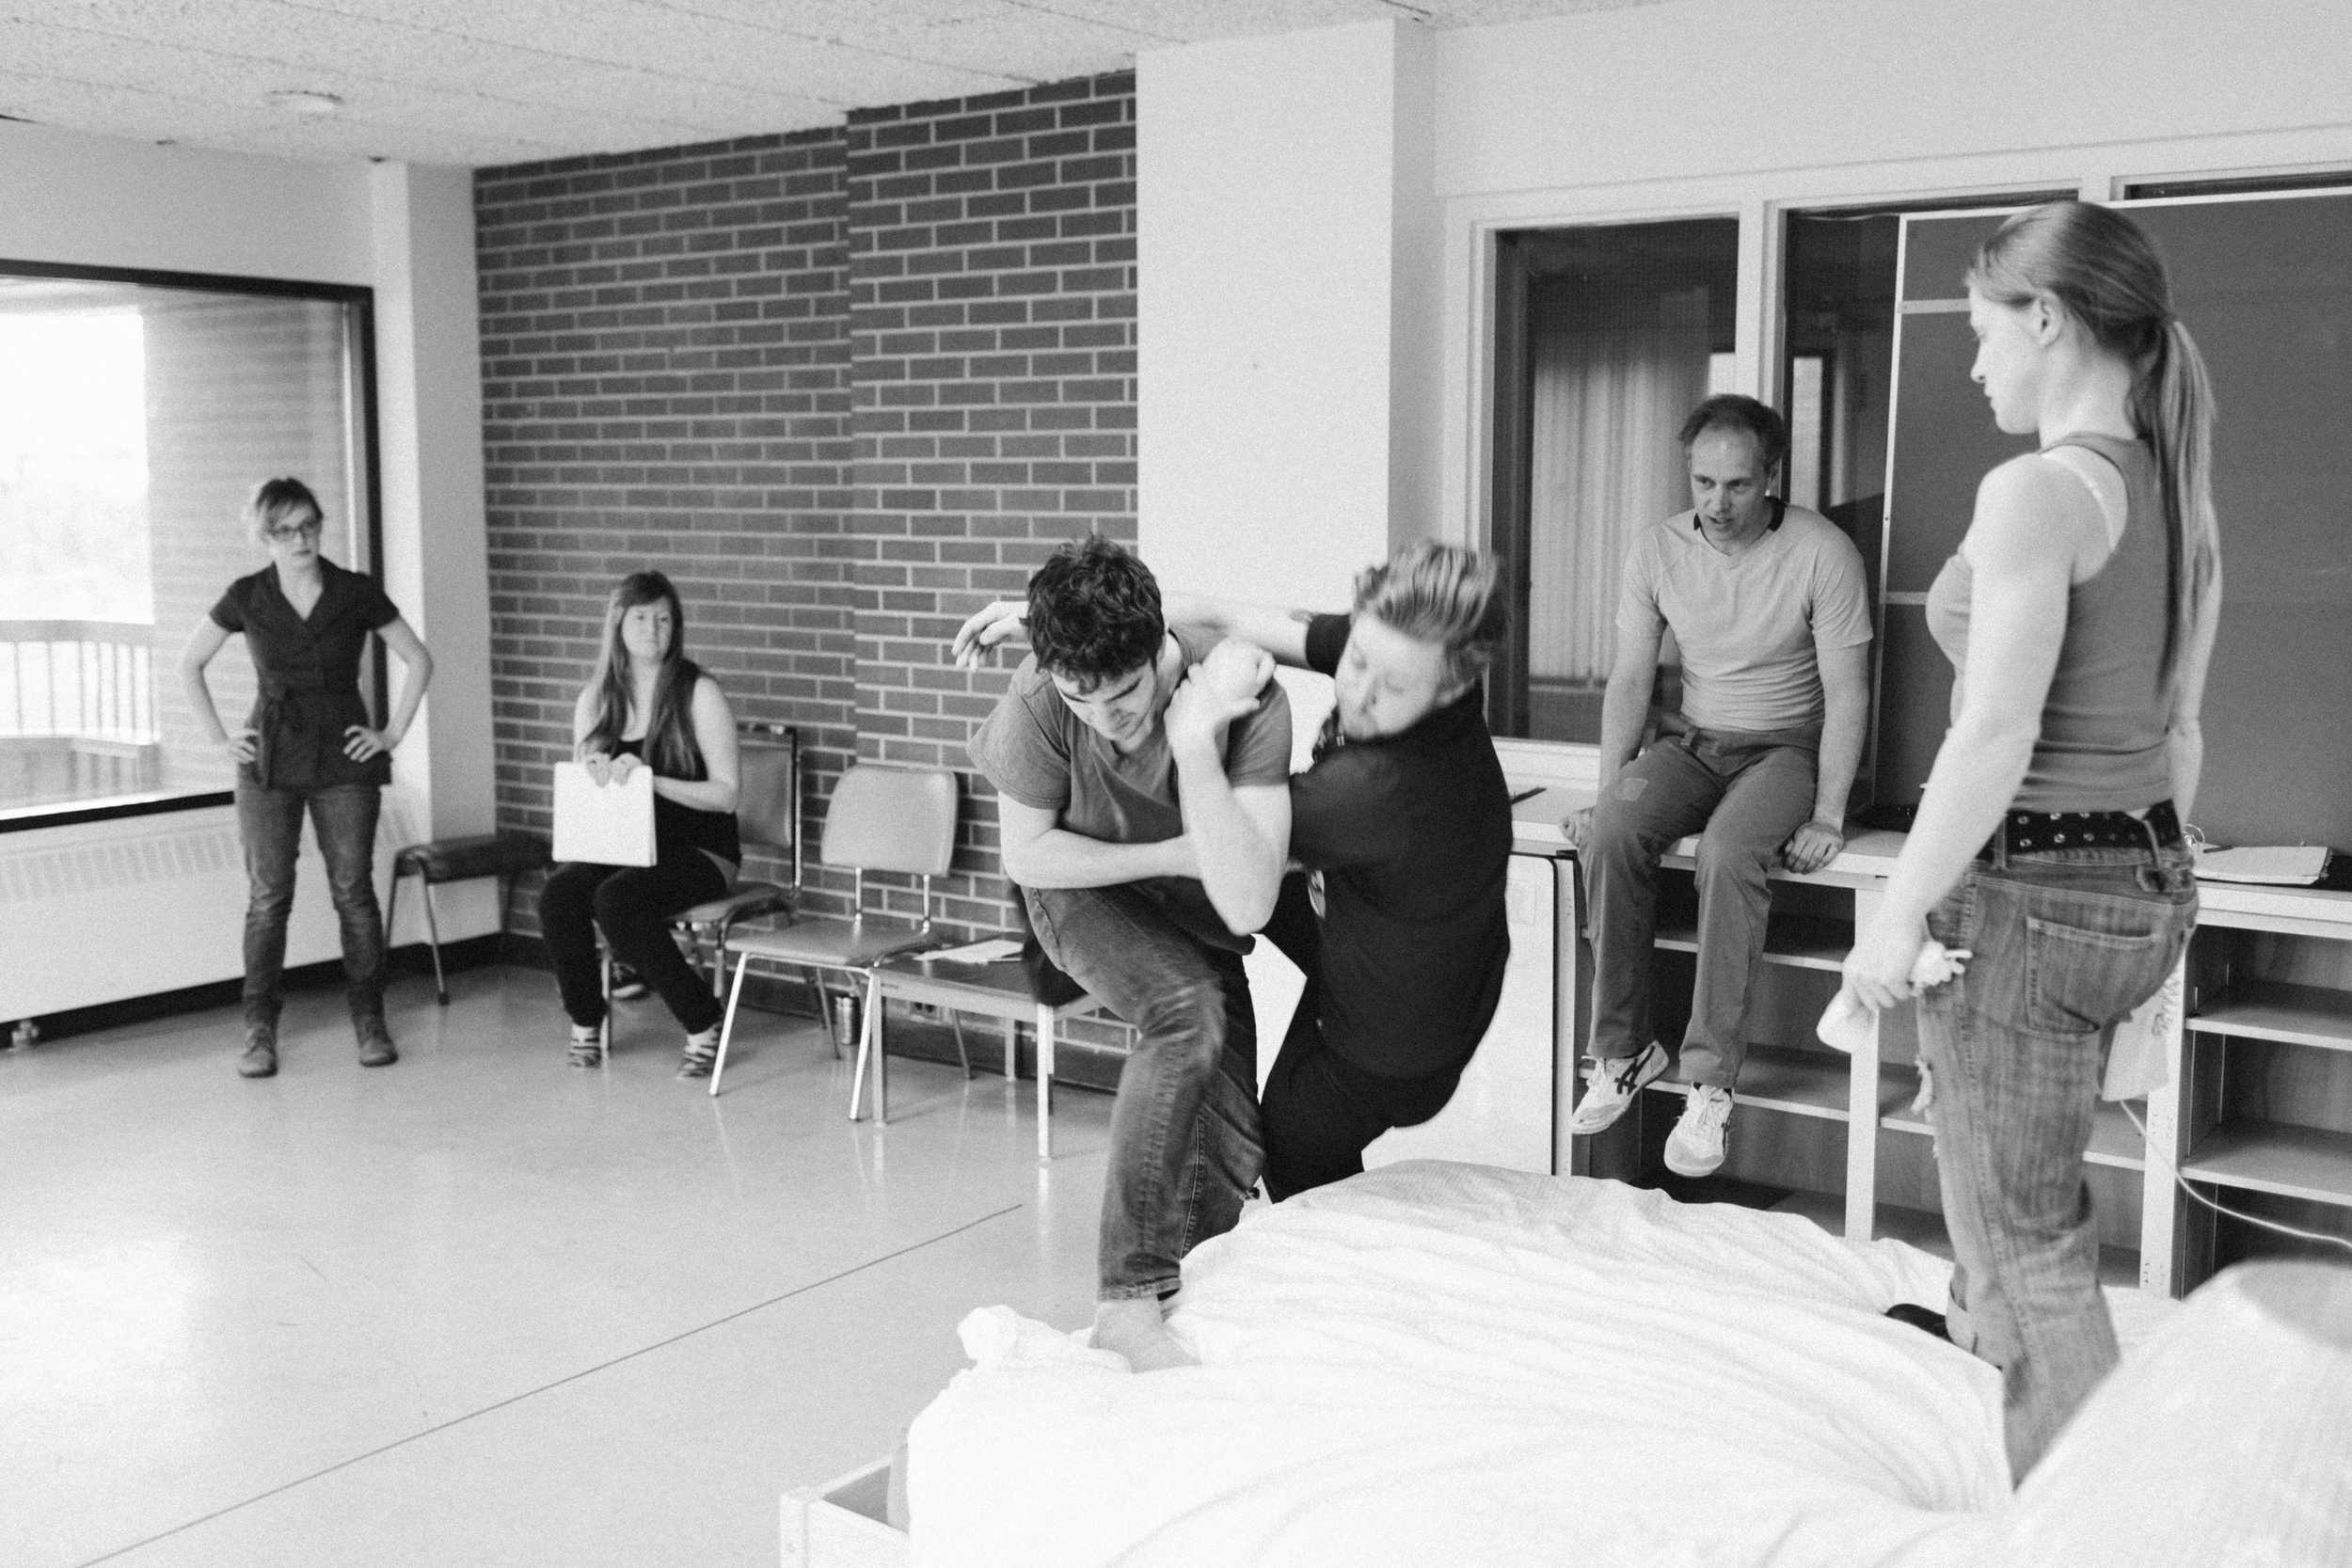 Director Liz Hobbs and Assistant Director Erin Voaklander watch over fight rehearsal led by Fight Director Patrick Howarth. Featuring actors Chris W. Cook (Michael), Oscar Derkx (Dave), and Amber Bissonnette (Loretta).